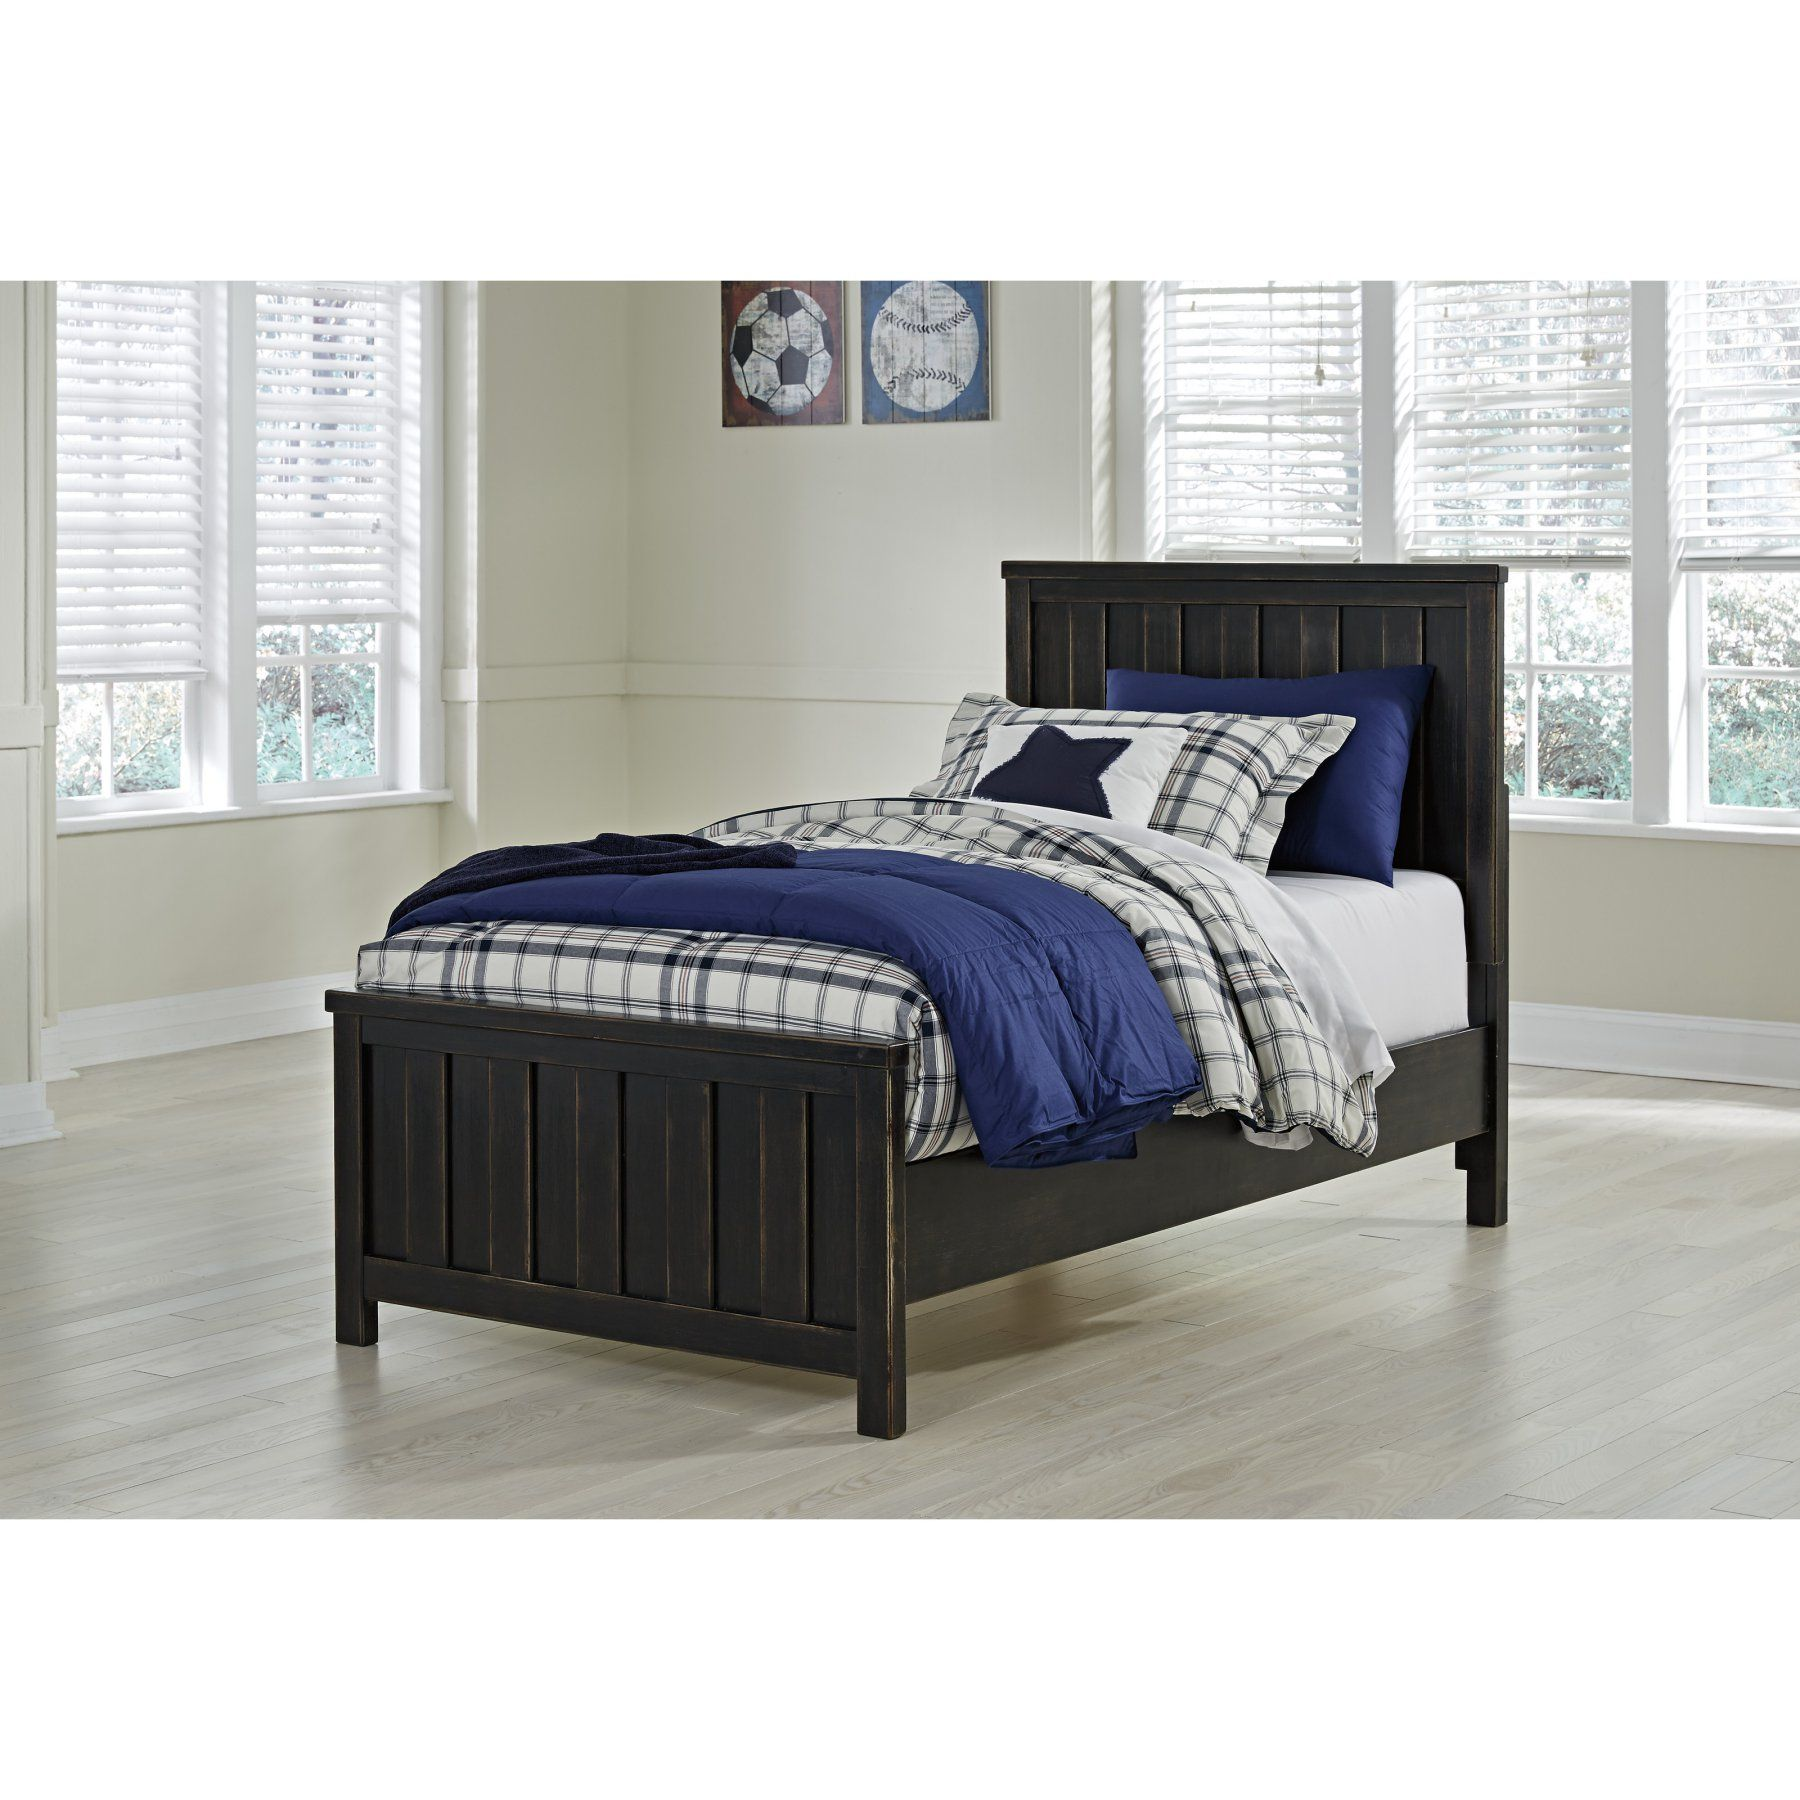 Signature Design by Ashley Jaysom Youth Panel Bed Black